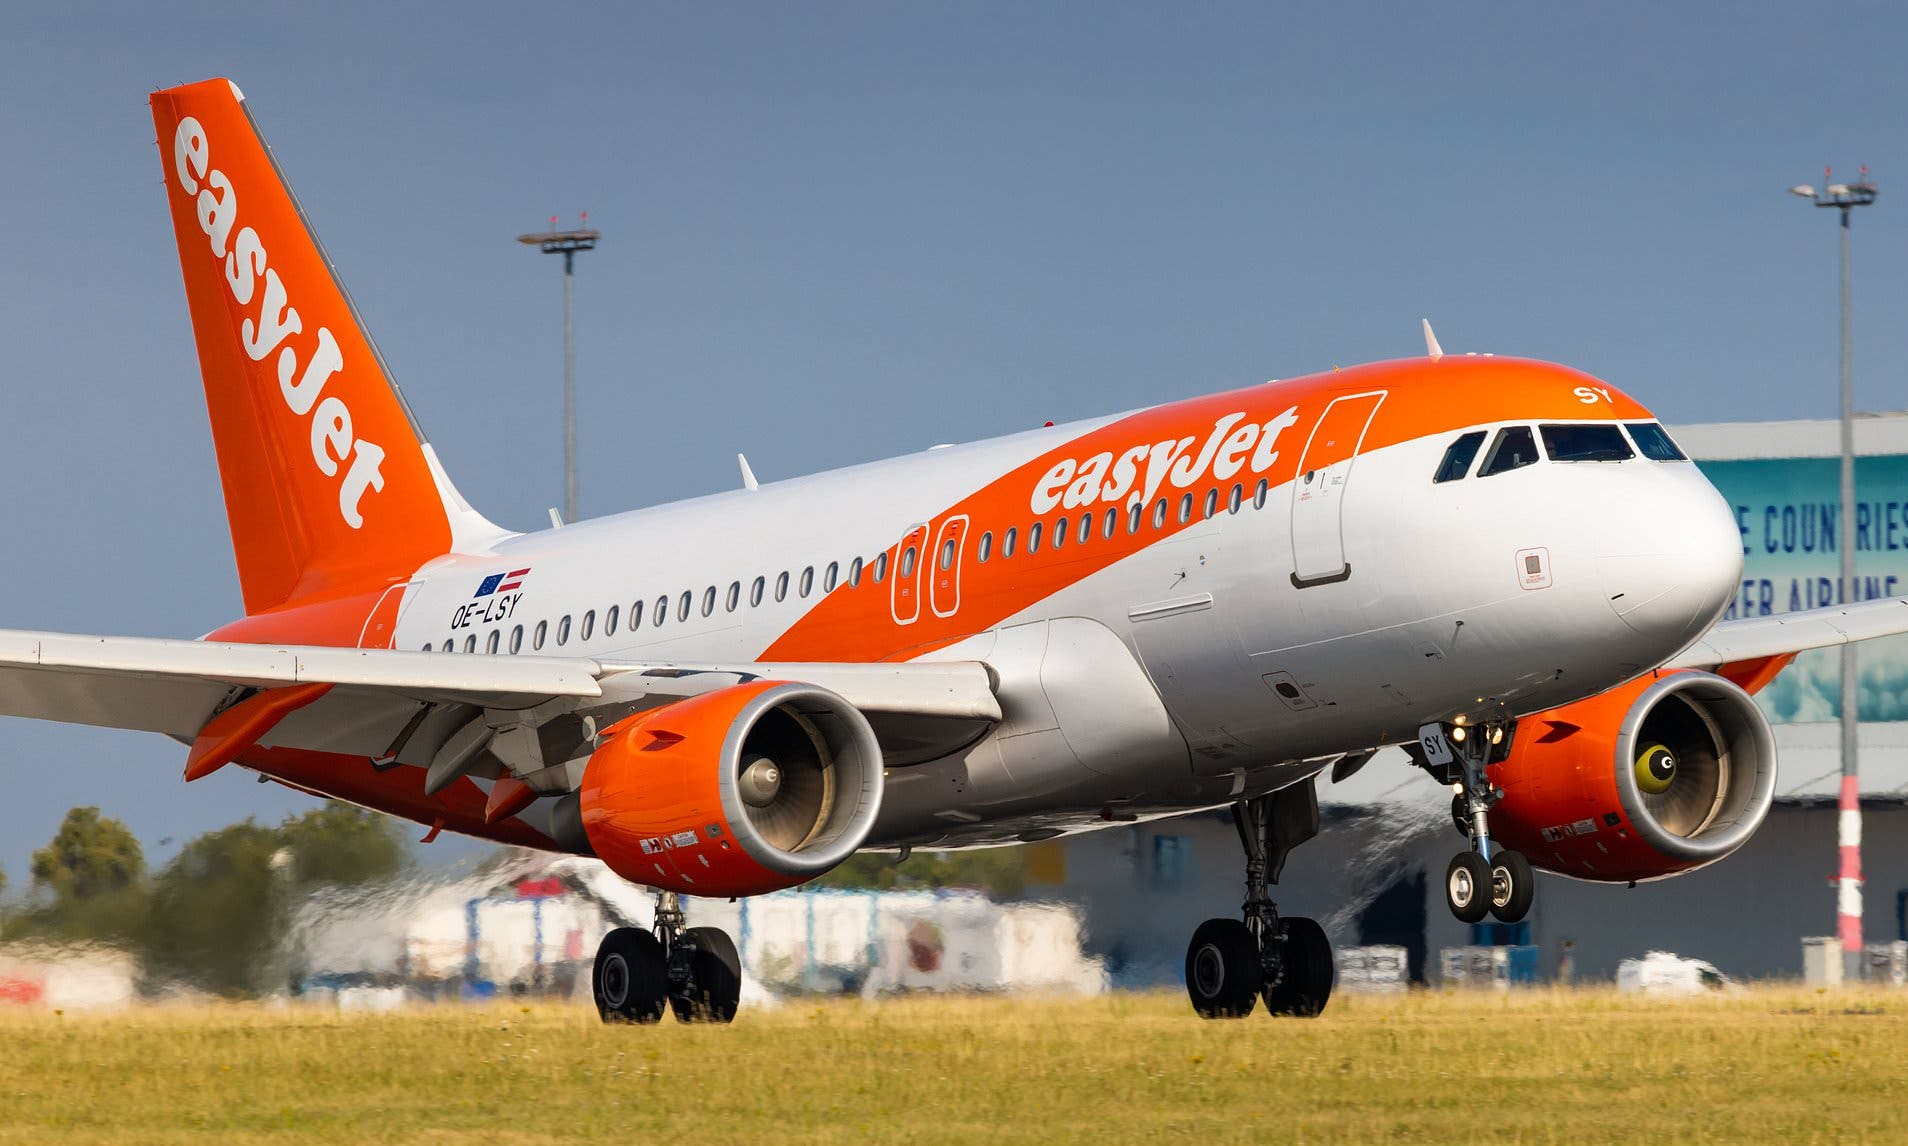 Easyjet announces second base at Malaga airport on Spain's Costa del Sol 1